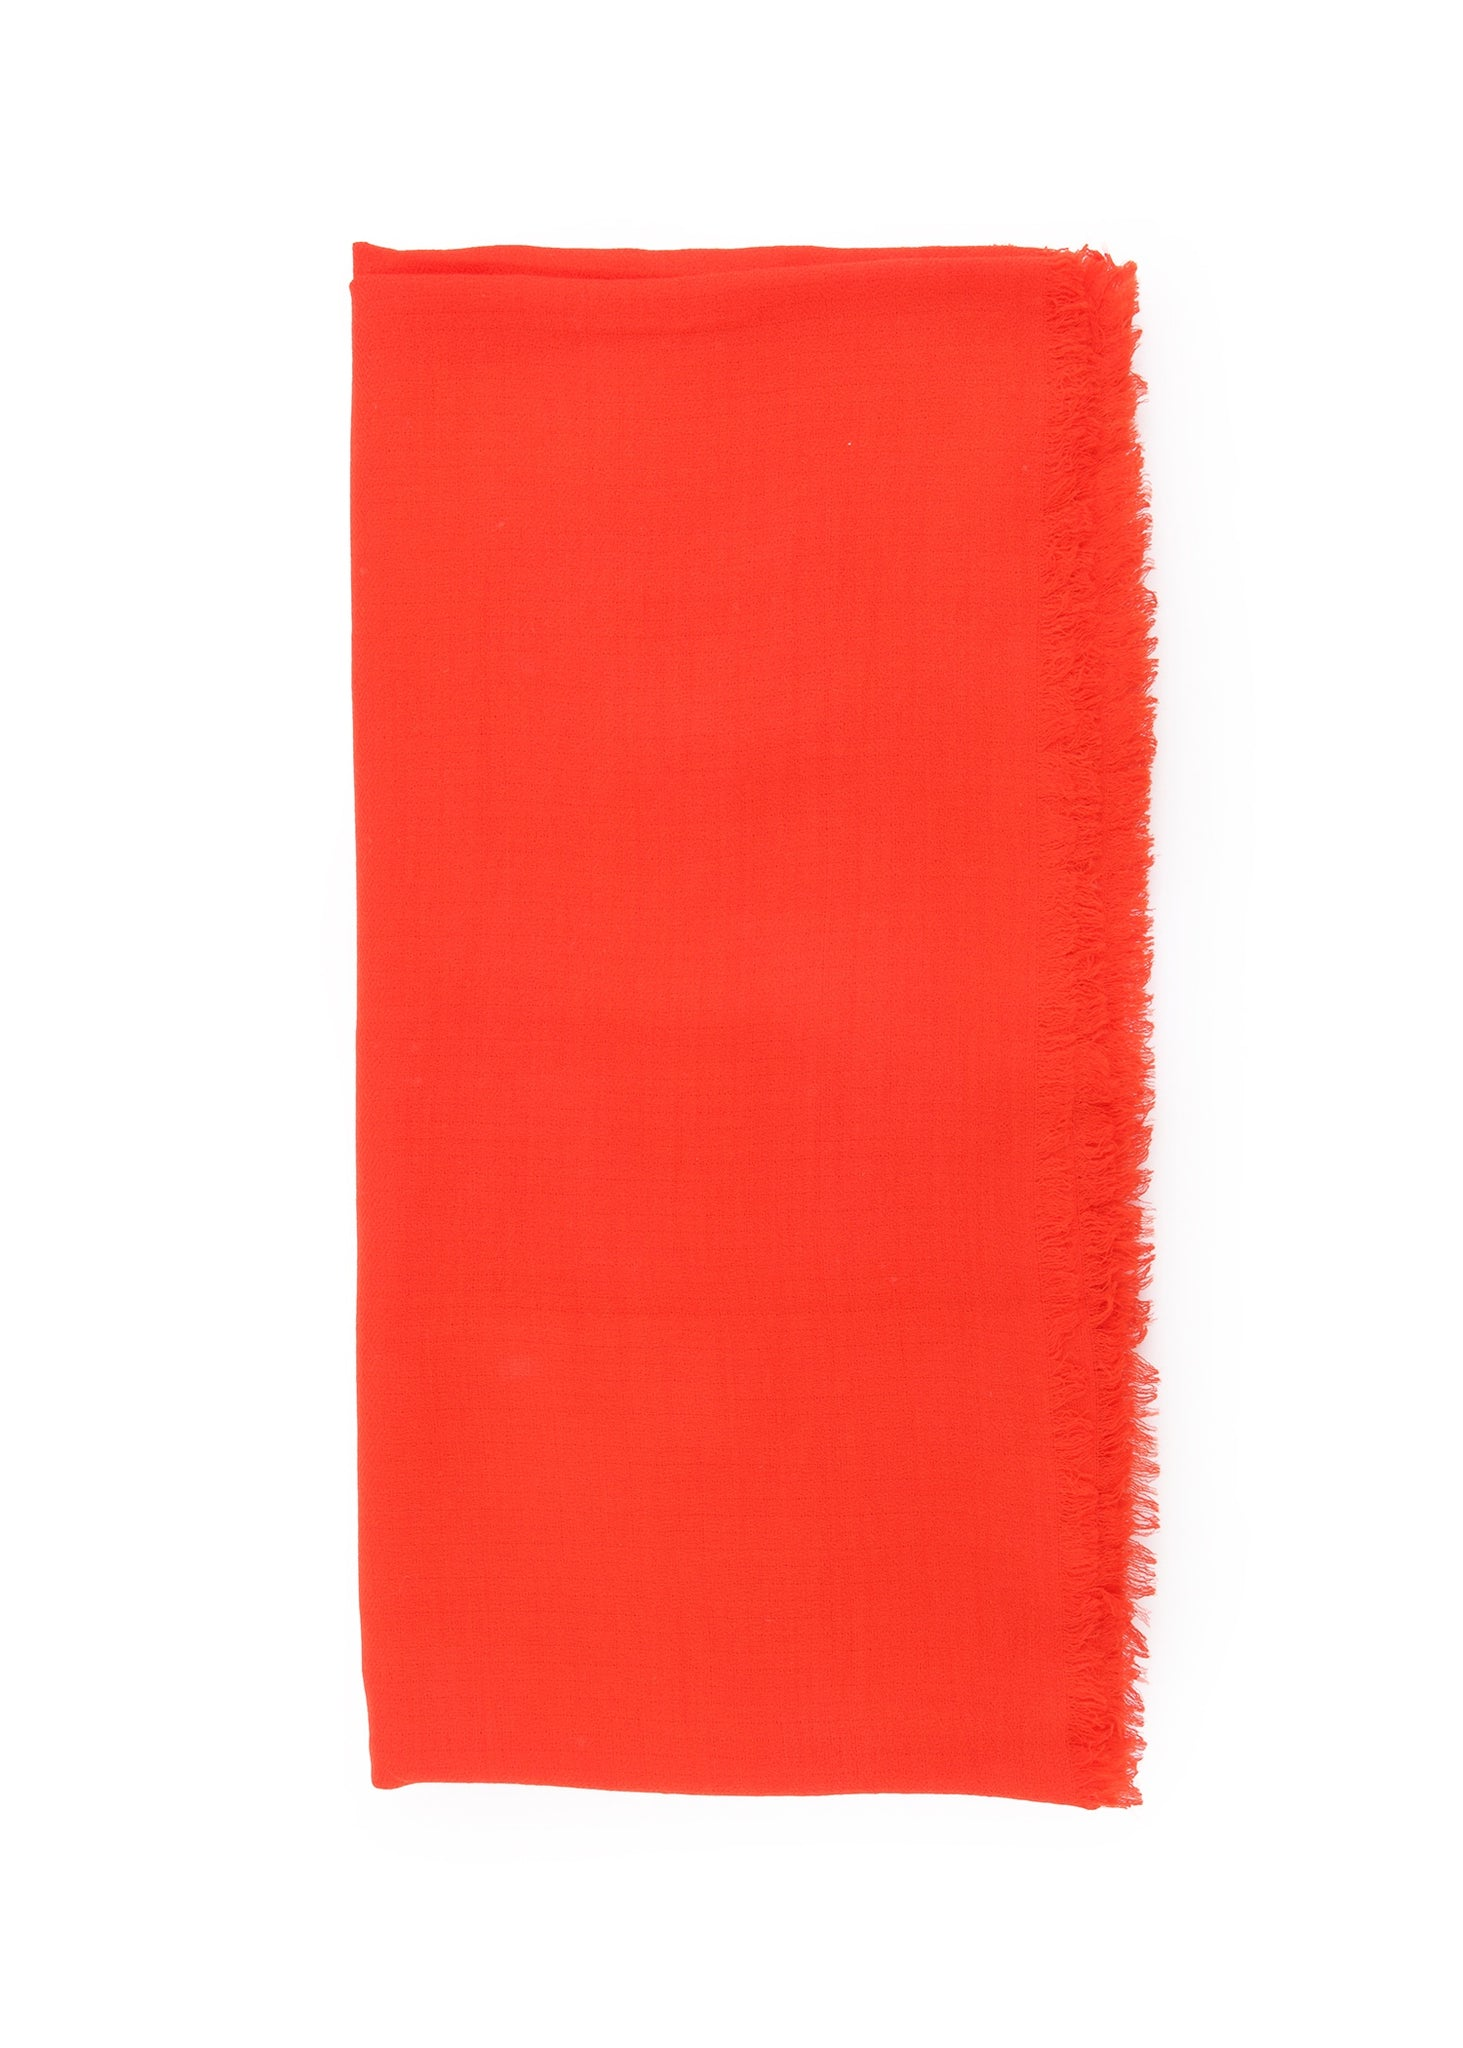 Foulard Léger en Cachemire Orange|Lightweight Cashmere Scarf in Orange